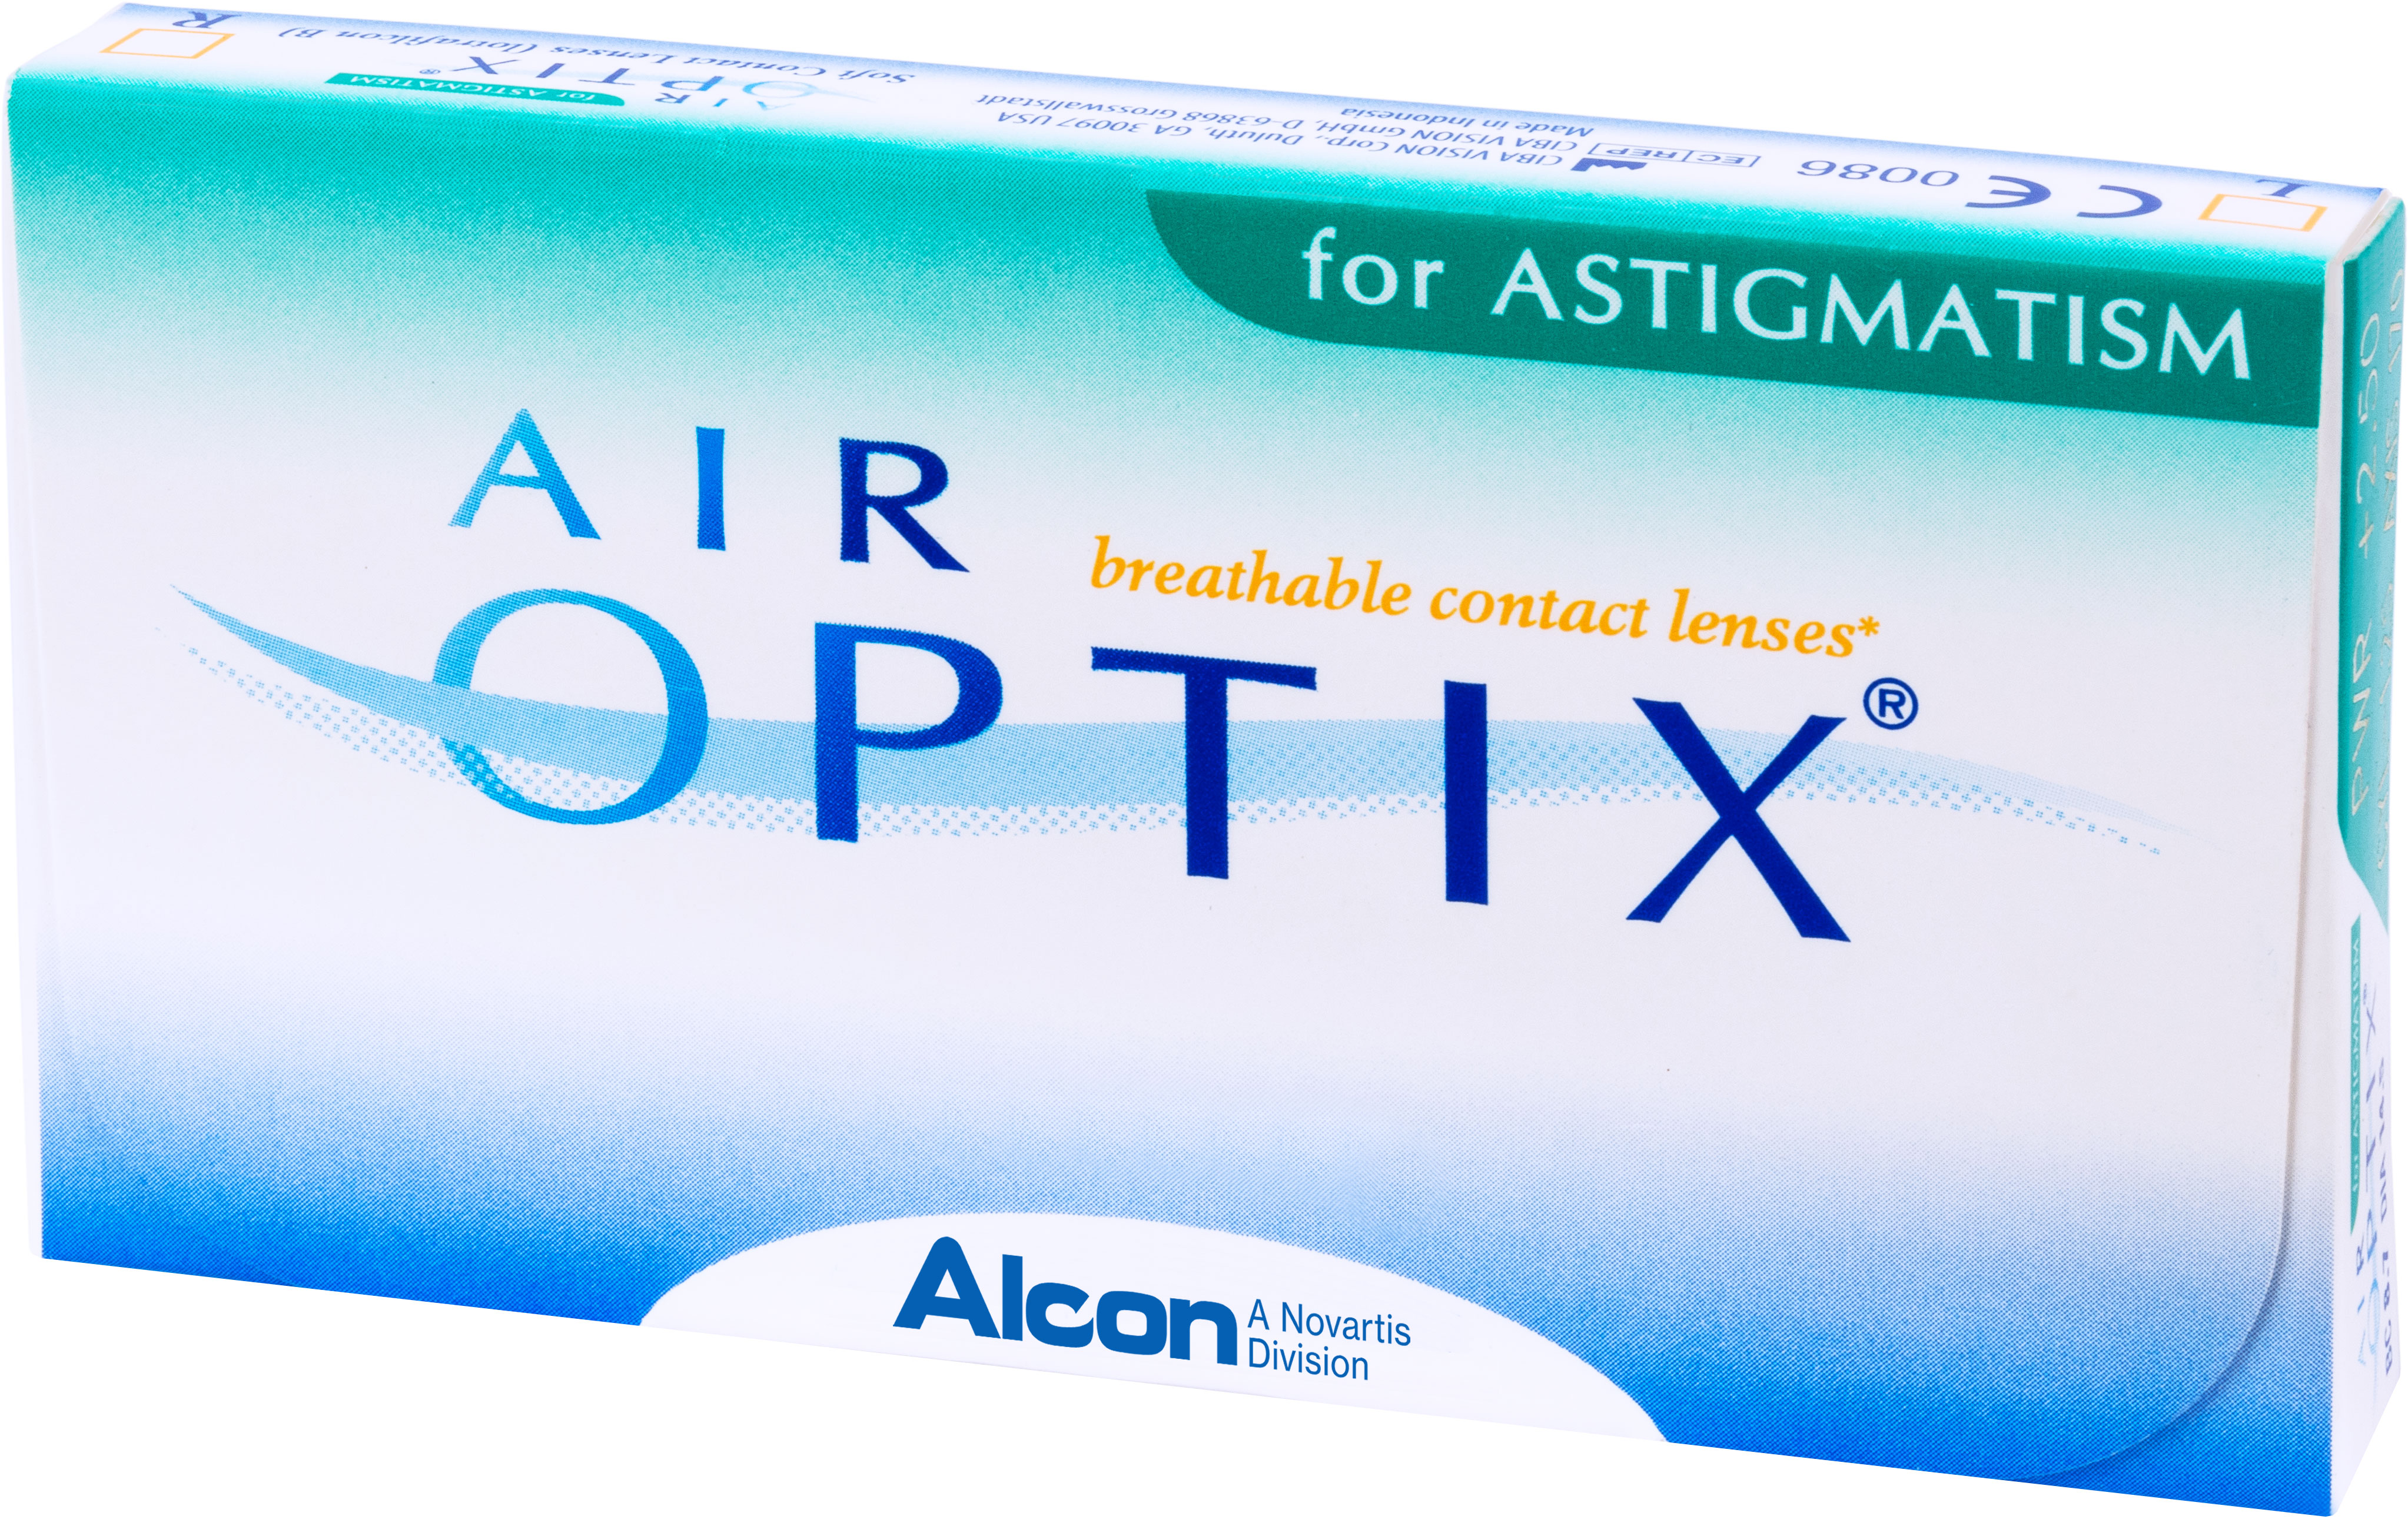 Аlcon контактные линзы Air Optix for Astigmatism 3pk /BC 8.7/DIA14.5/PWR -3.25/CYL -0.75/AXIS 70100028360